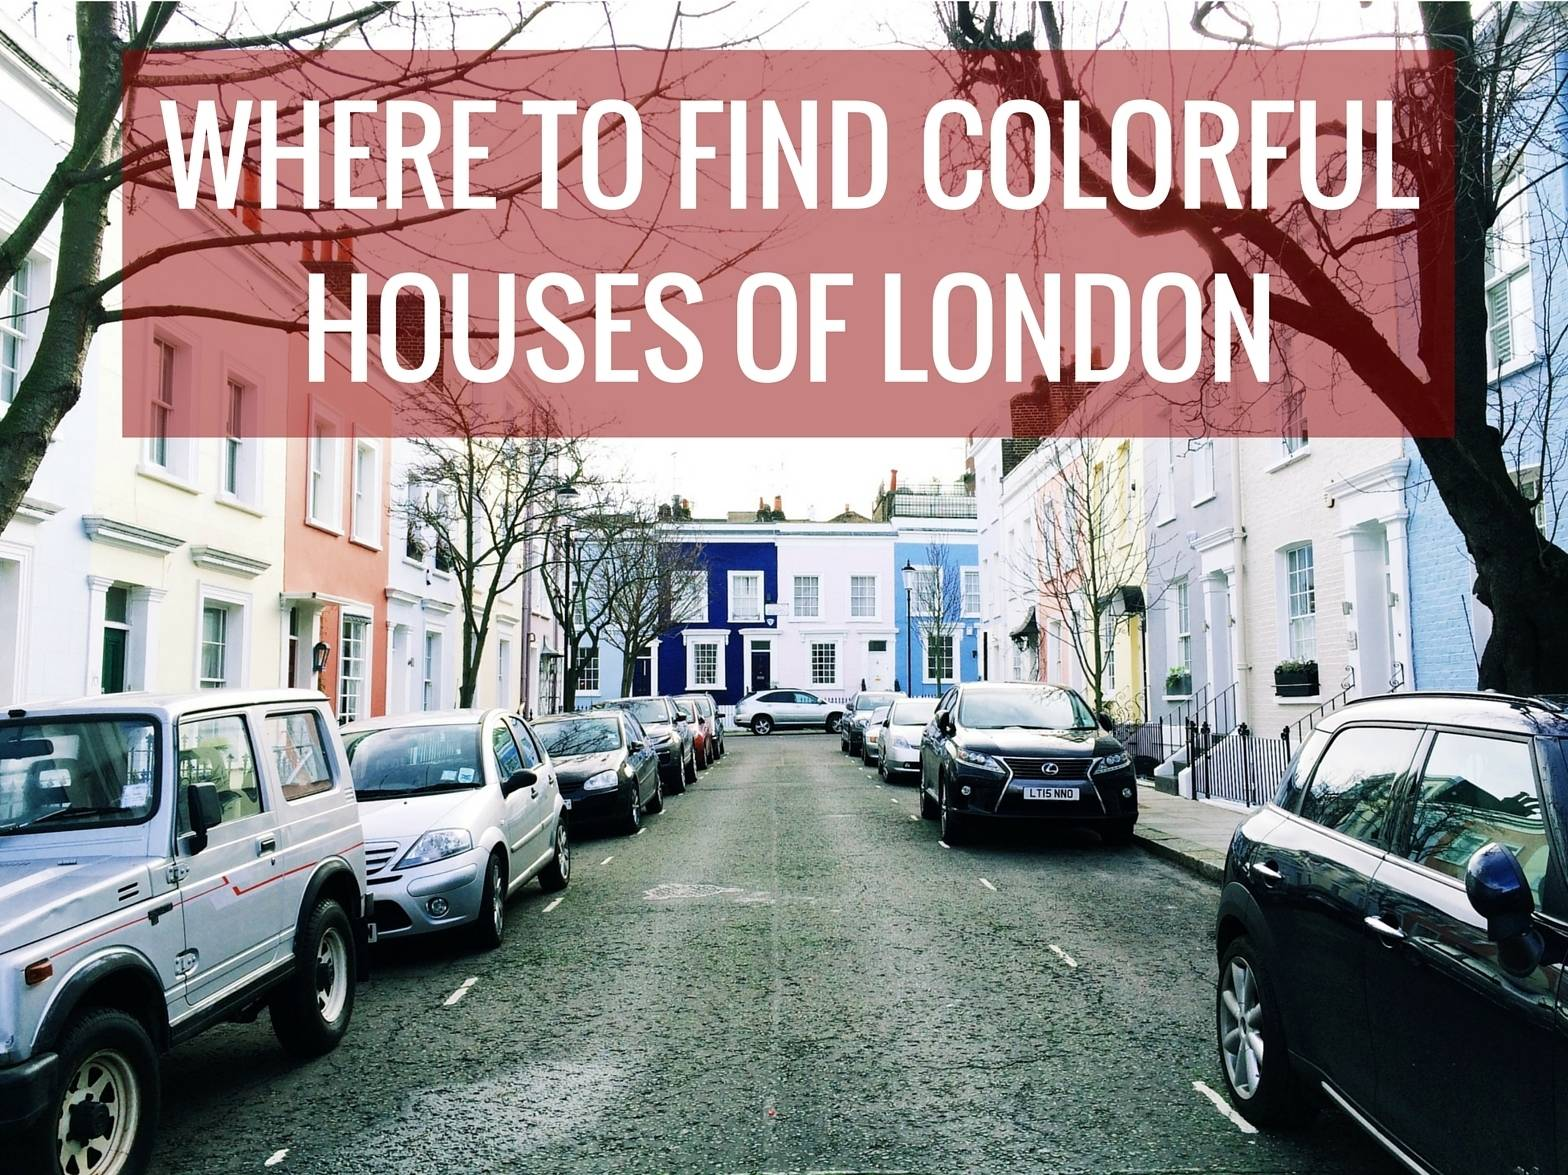 where to find colorful houses of london